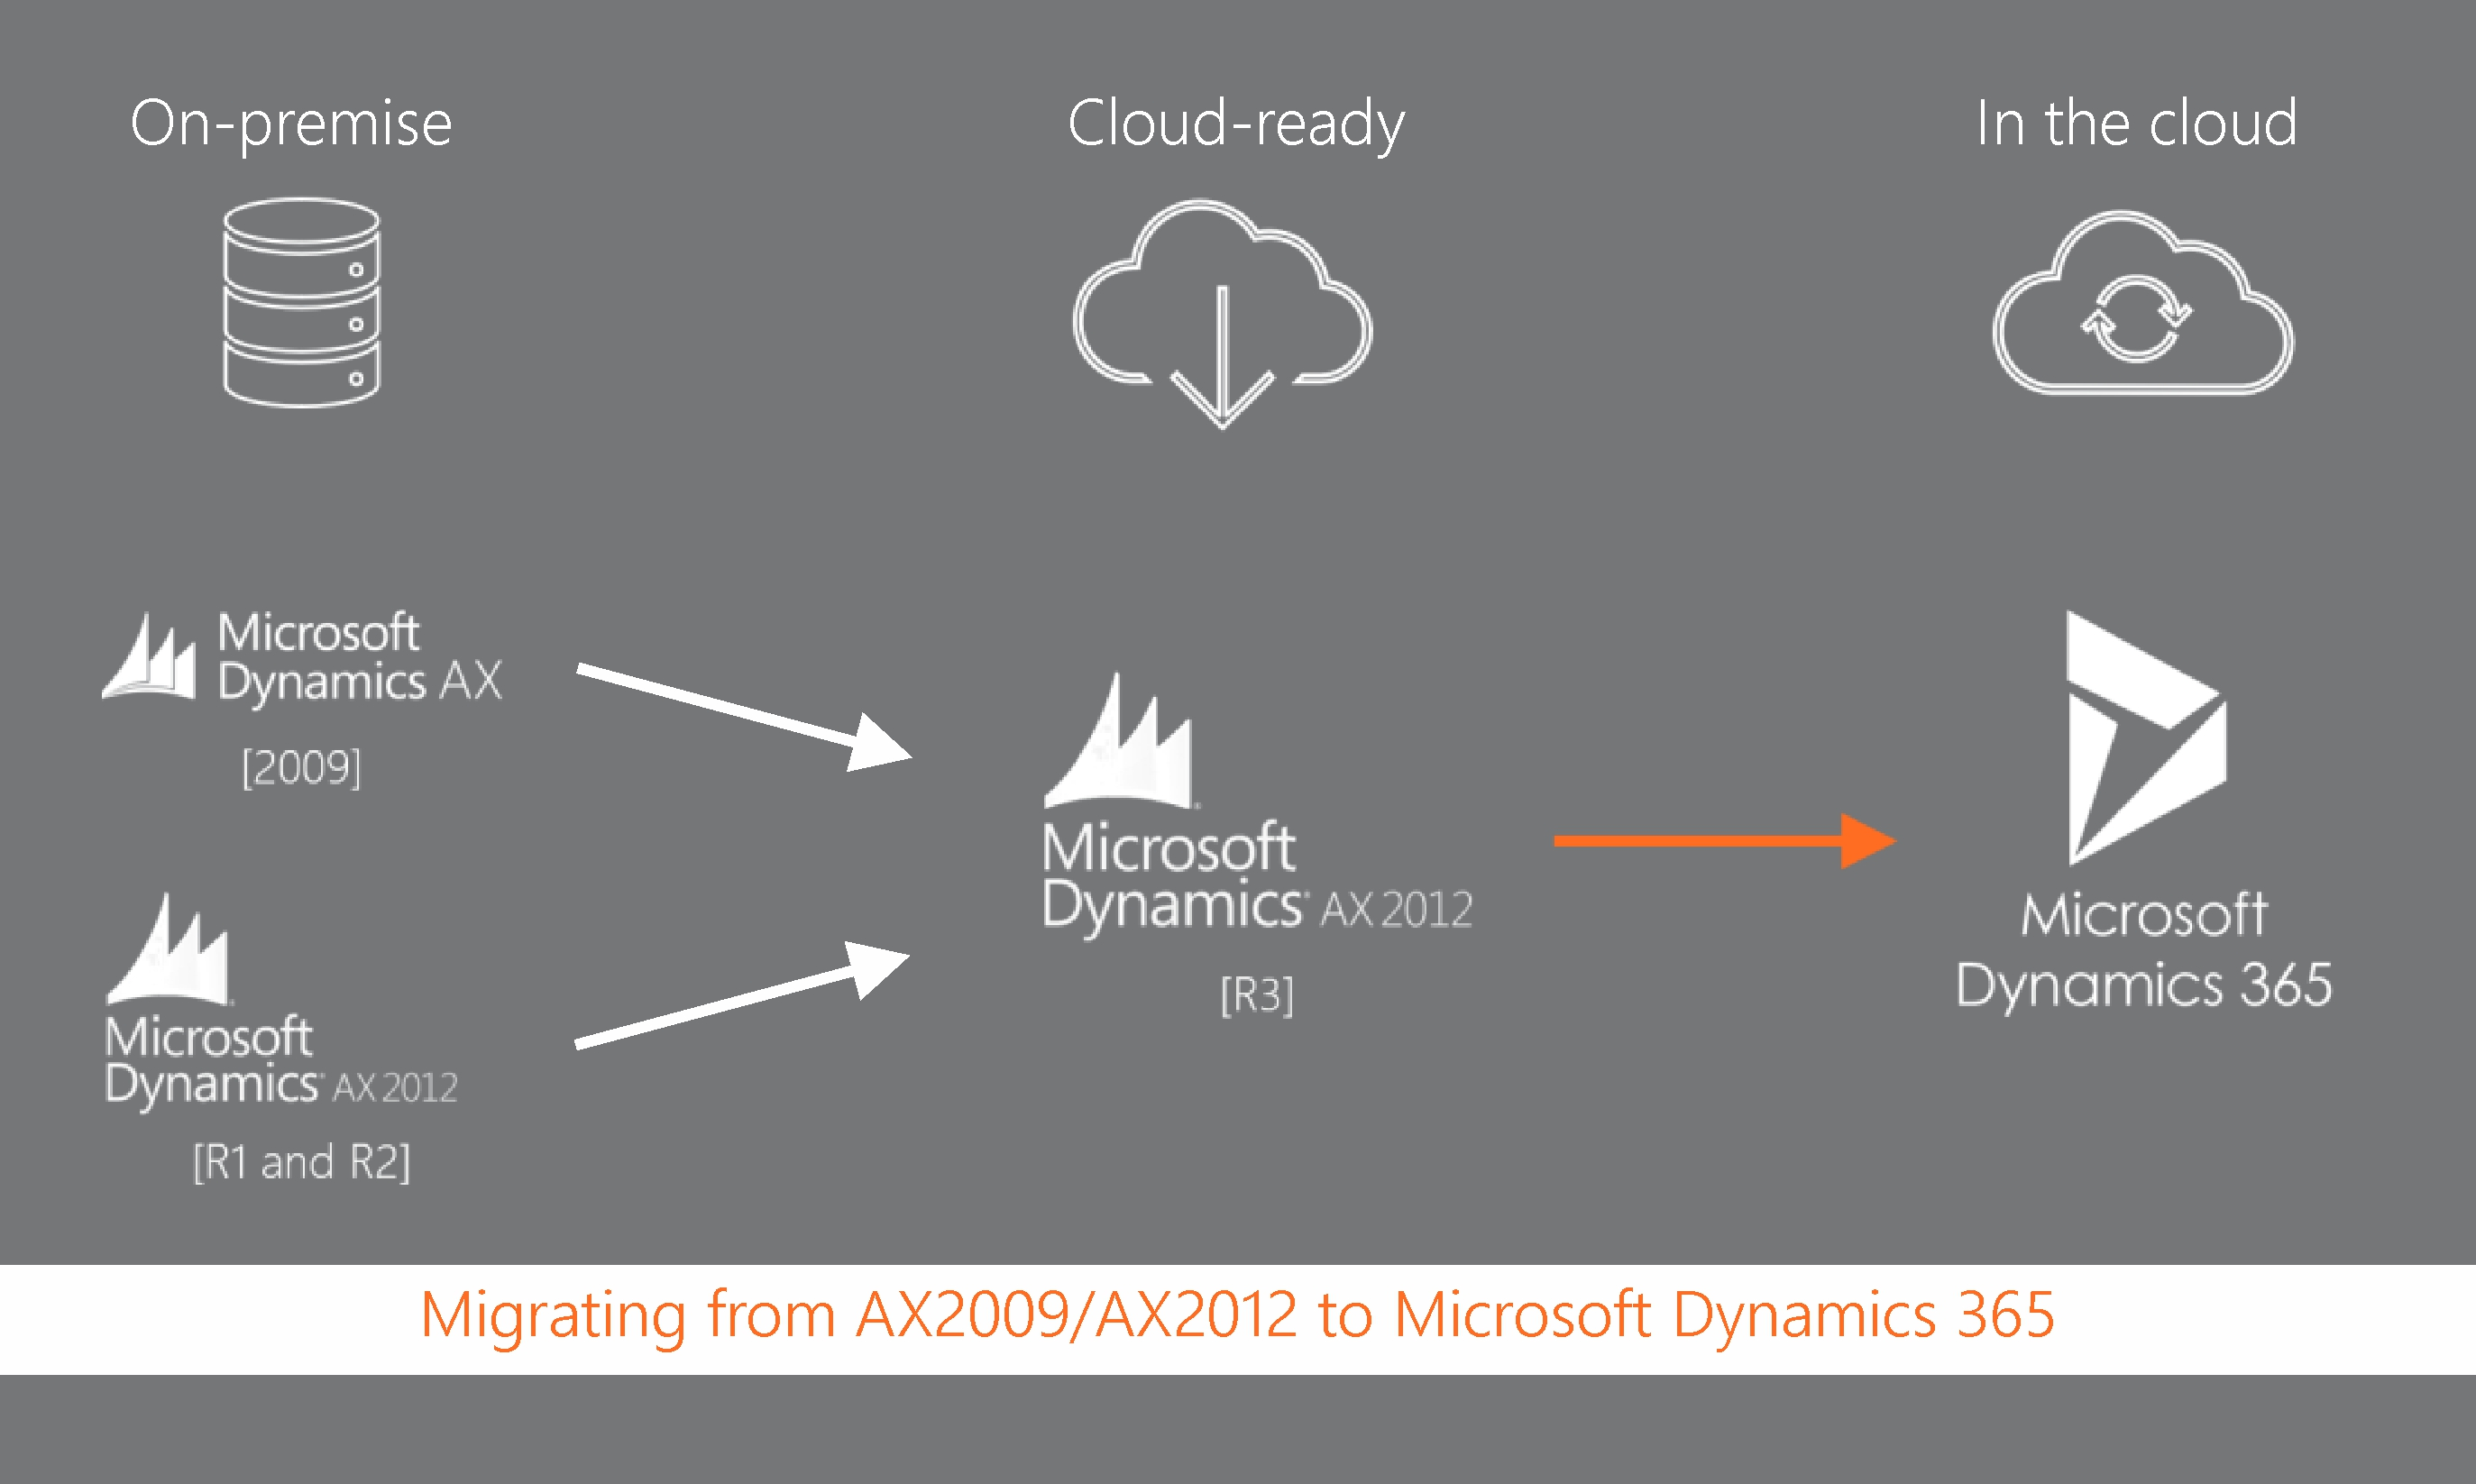 Migrating from AX2009/AX2012 to Microsoft Dynamics 365